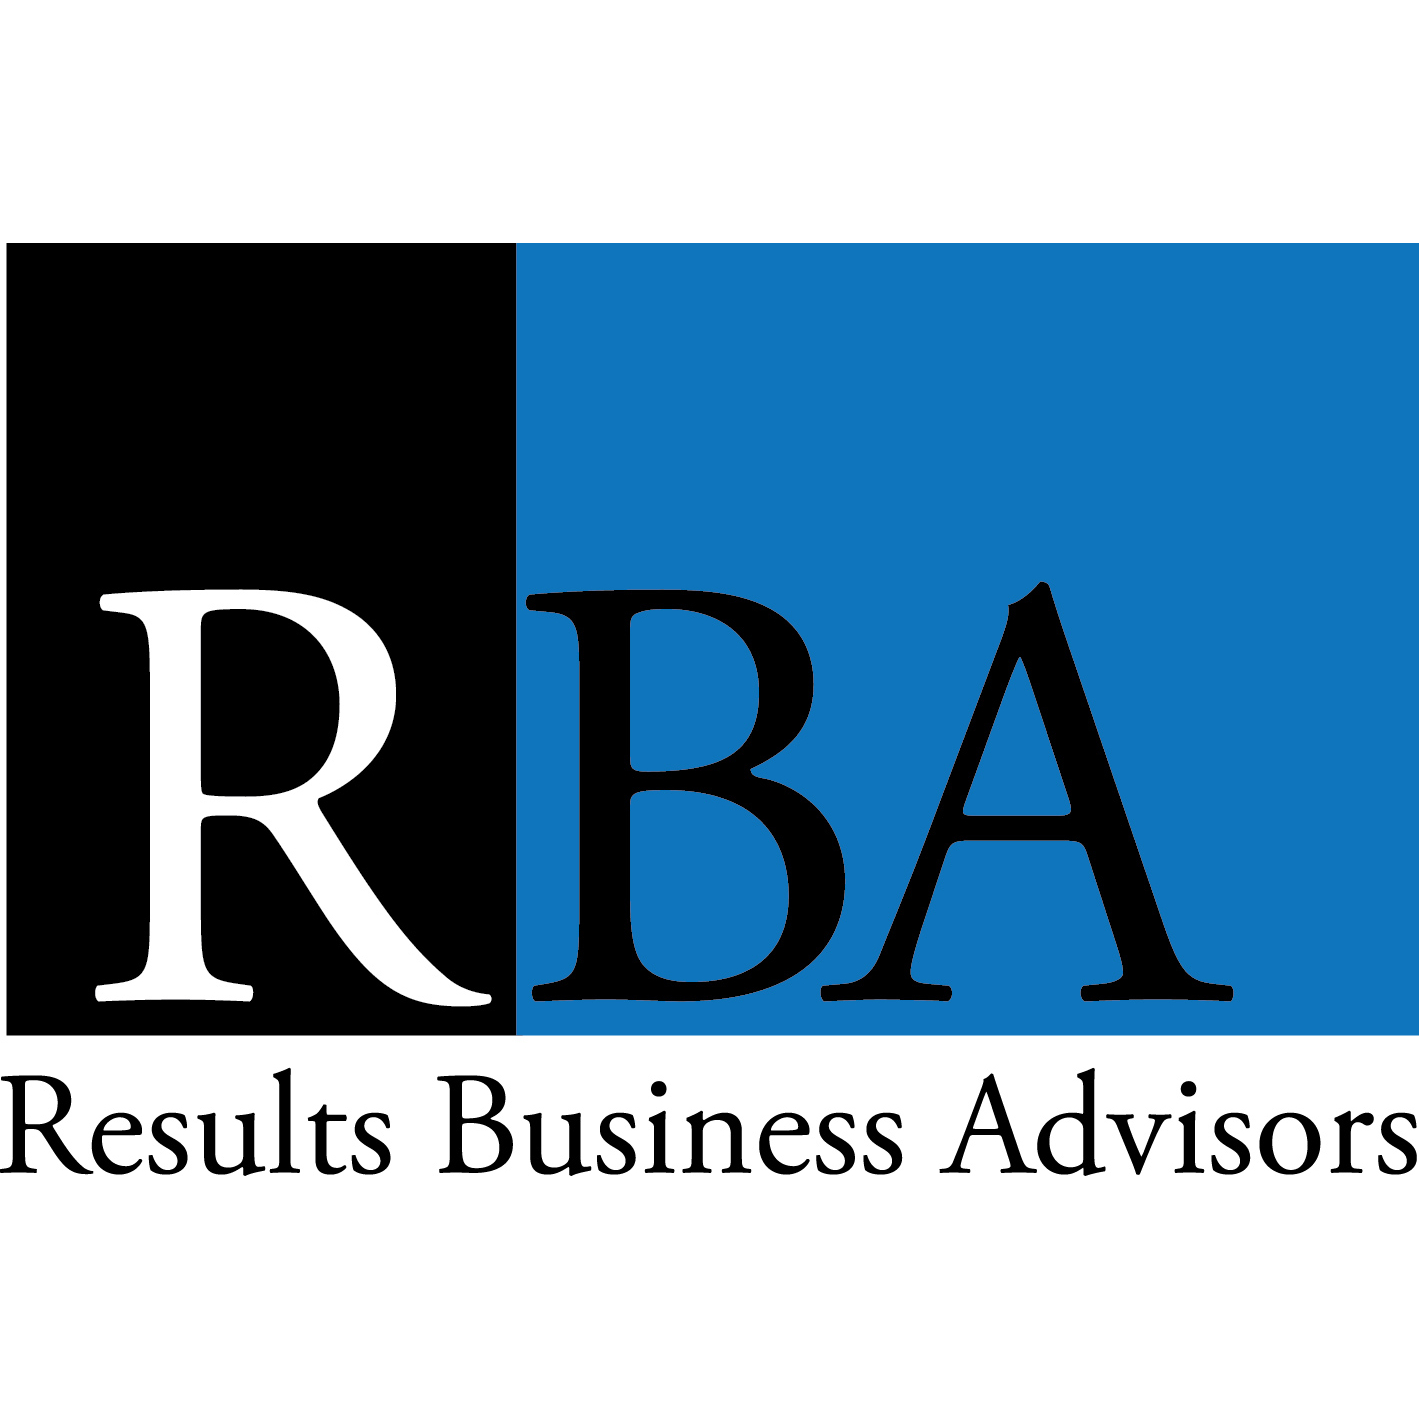 Results Business Advisors